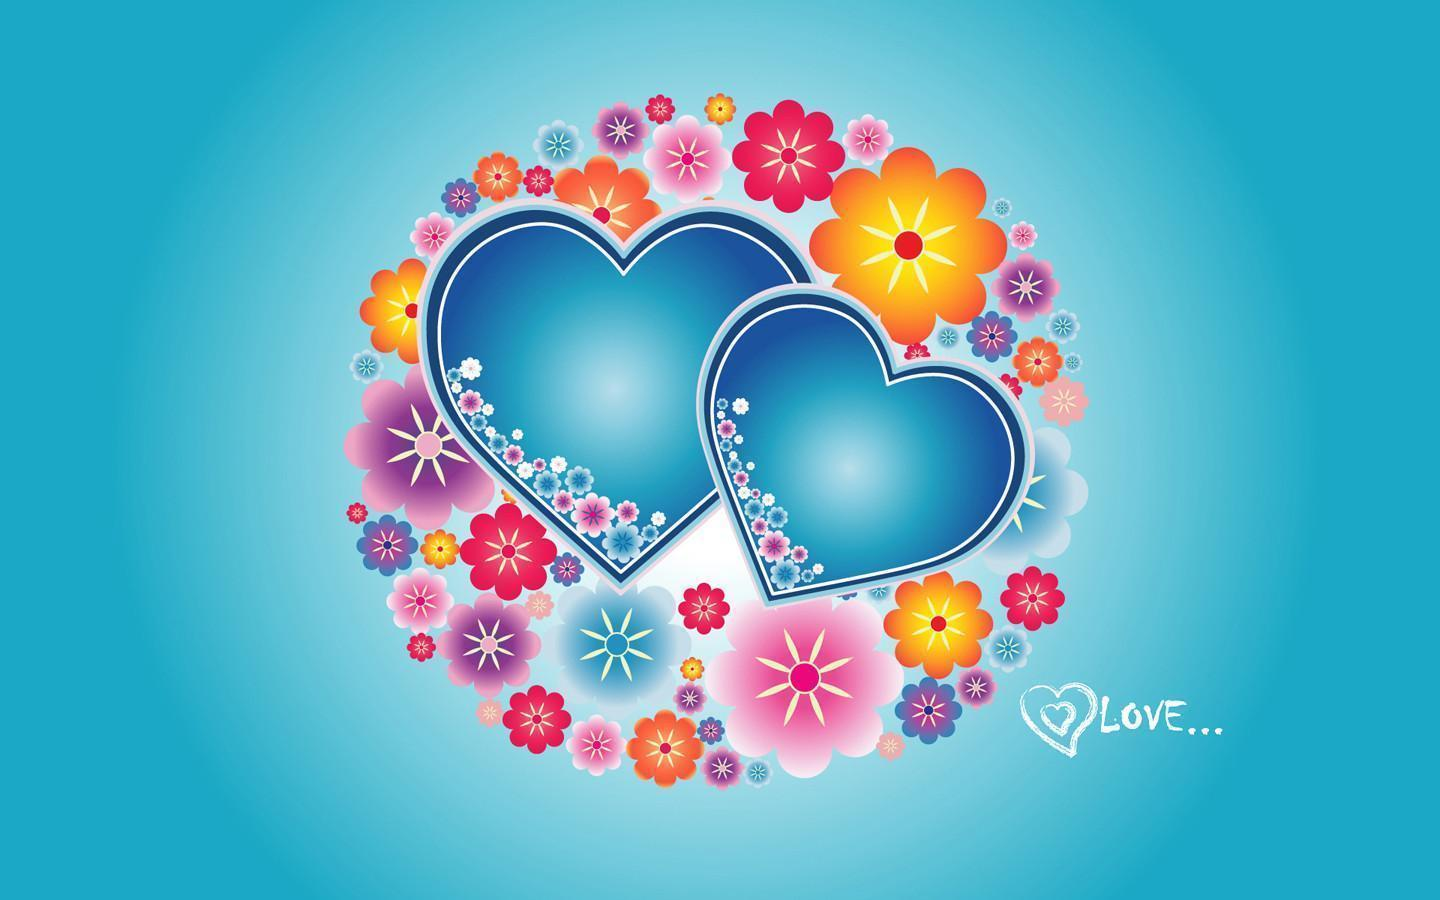 Love Heart Design Wallpaper : Love Heart Wallpapers HD - Wallpaper cave